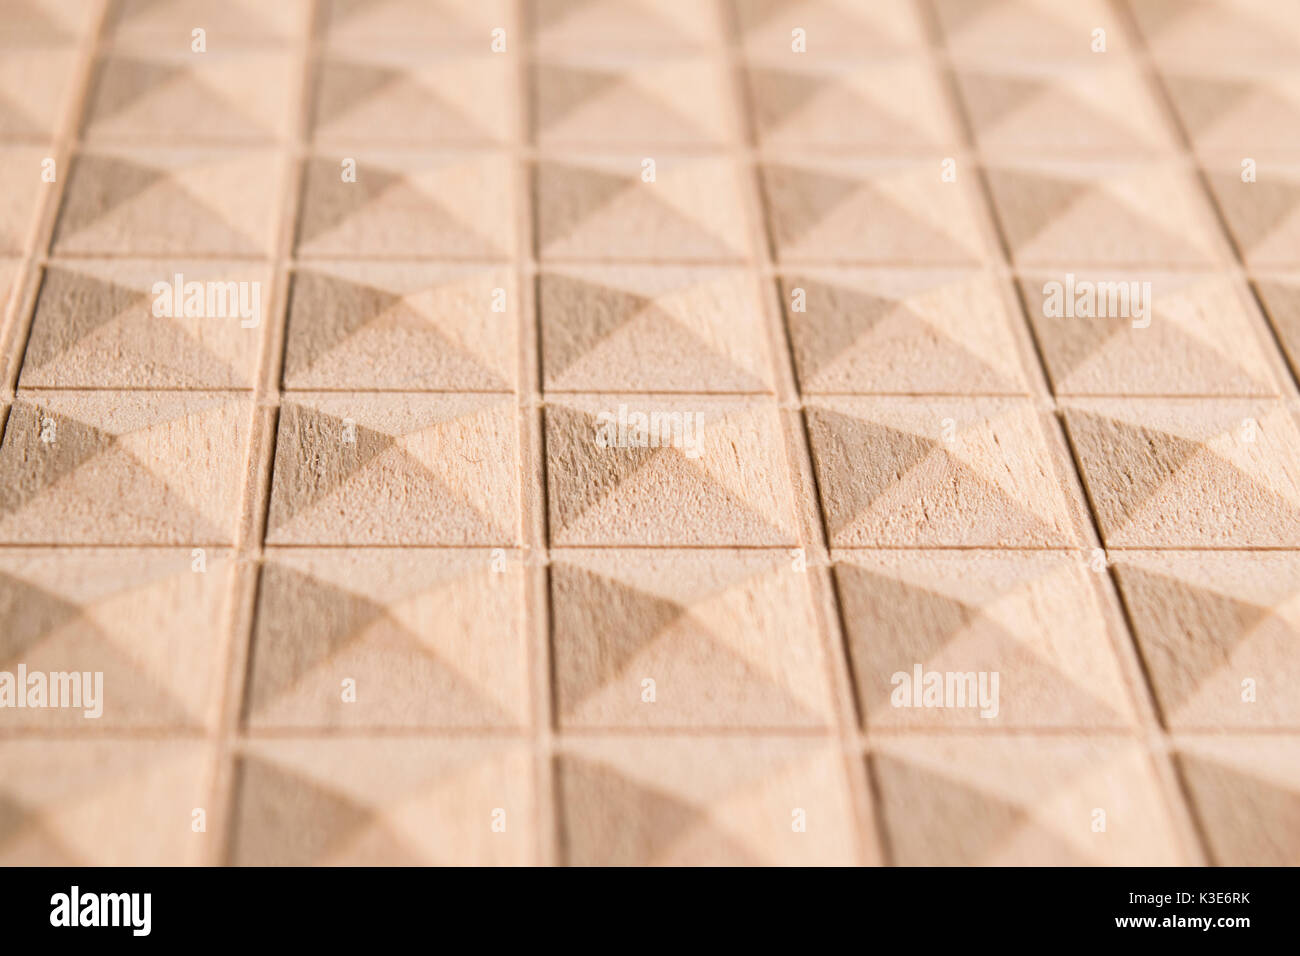 Tapete Wand Panel Grunge Pattern Paving Blocks Stockfotos And Grunge Pattern